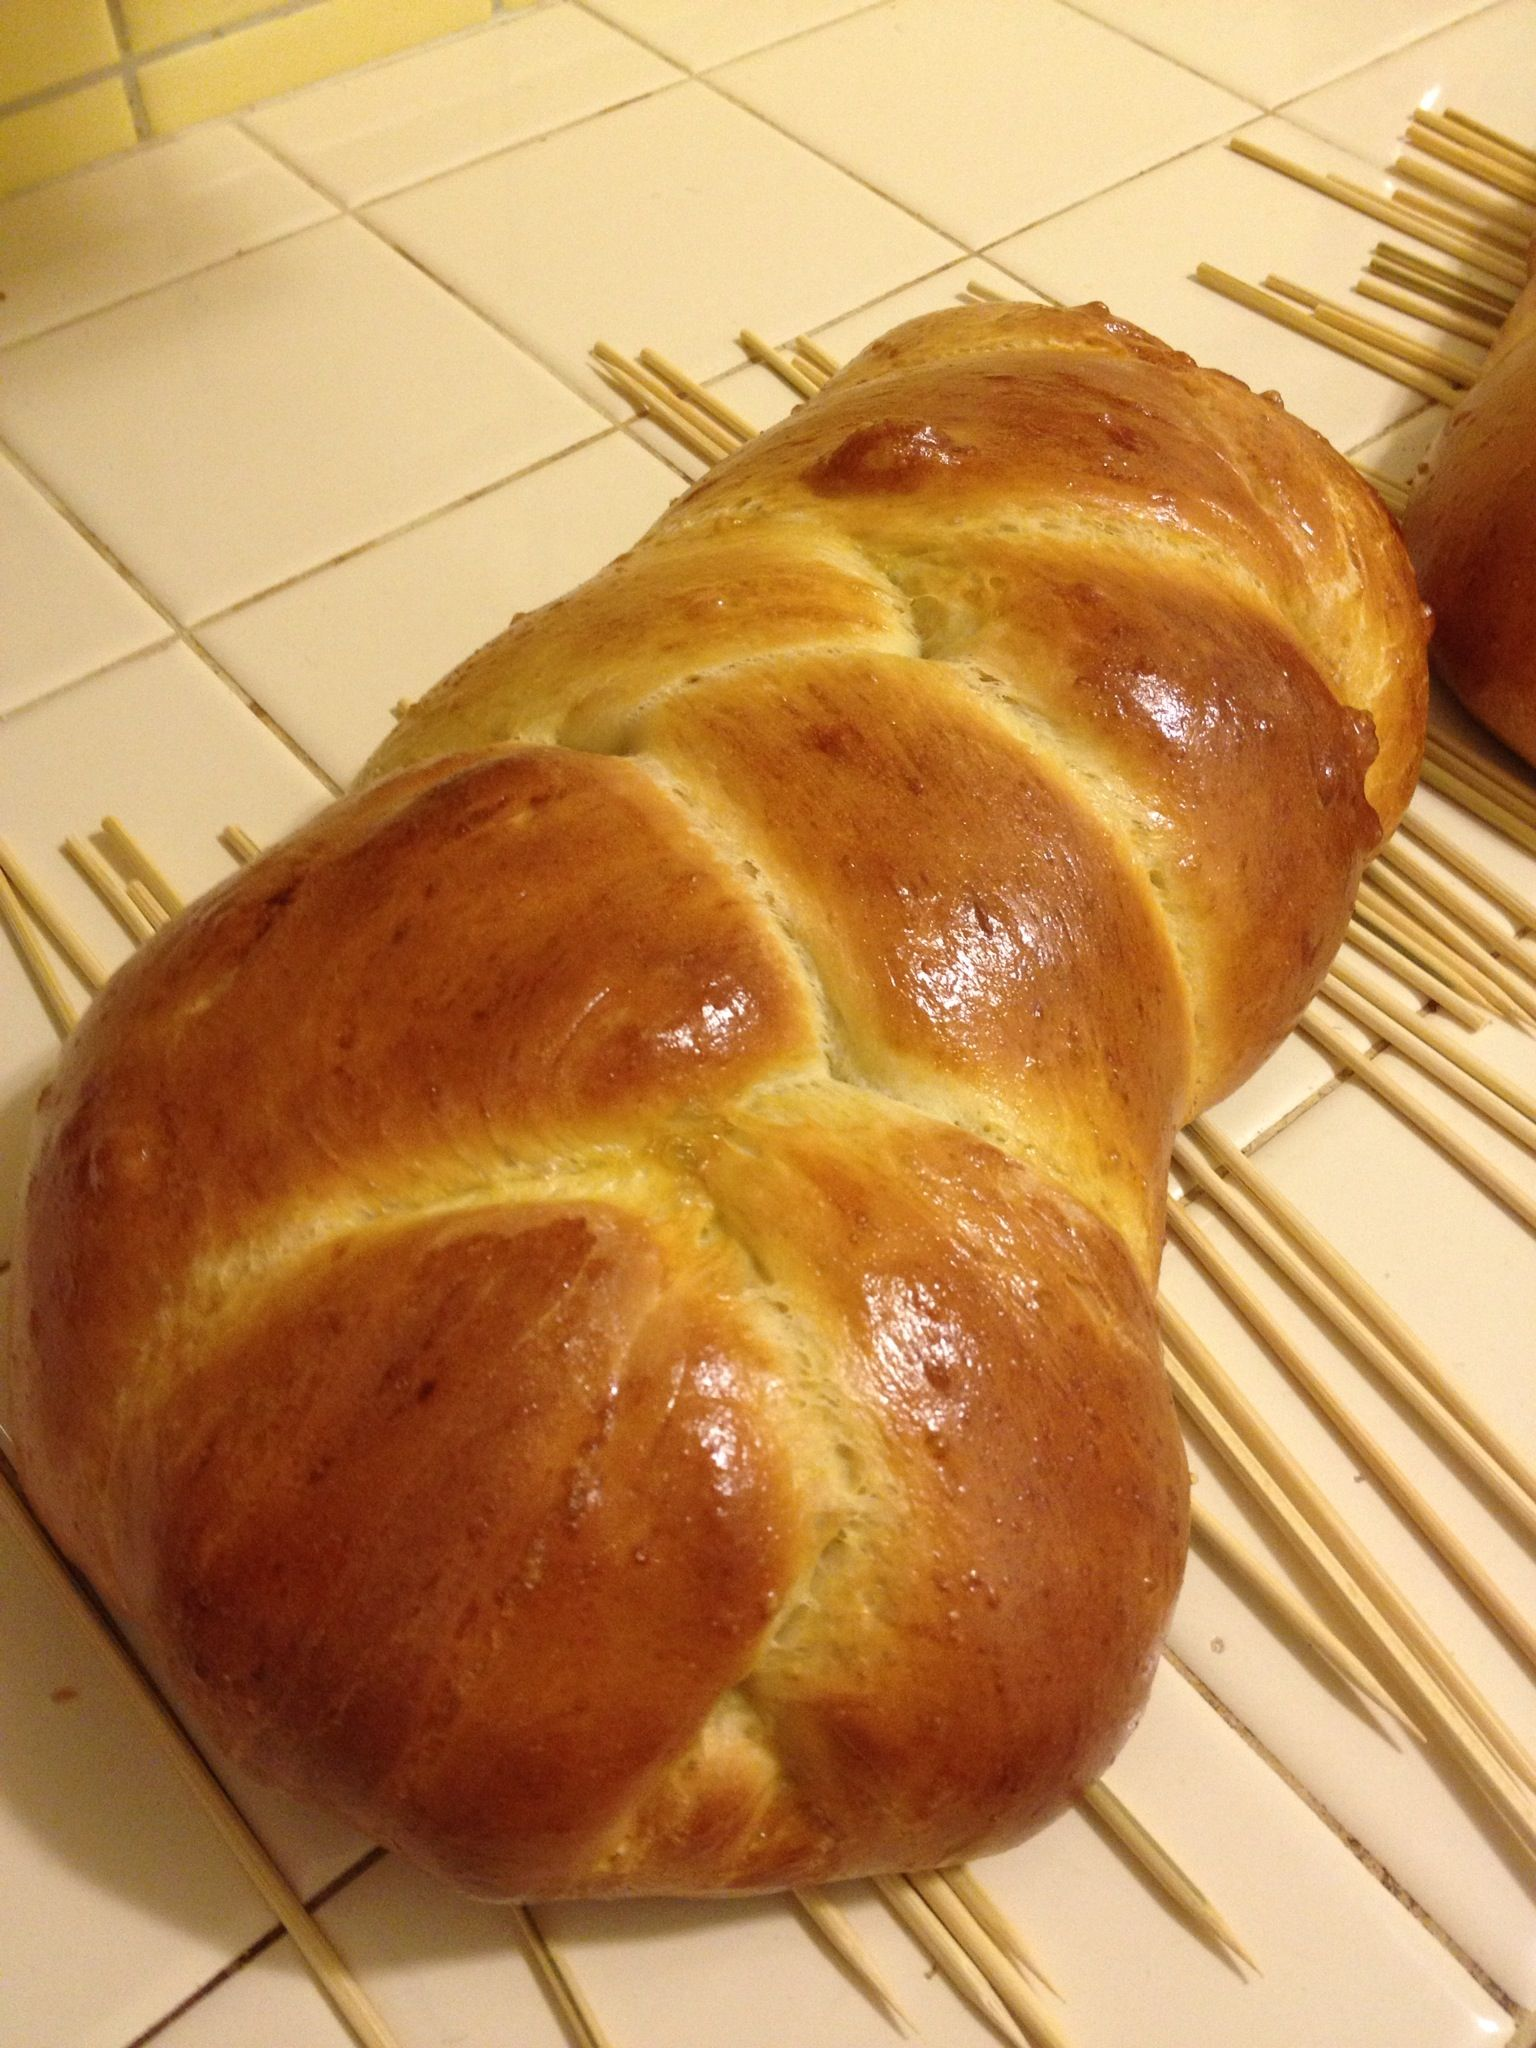 Challah bread!  This is the loaf I made, here is a link to the recipe!  http://allrecipes.com/recipe/sys-challah/detail.aspx?event8=1=SR_Title=challah=Quick%20Search=1